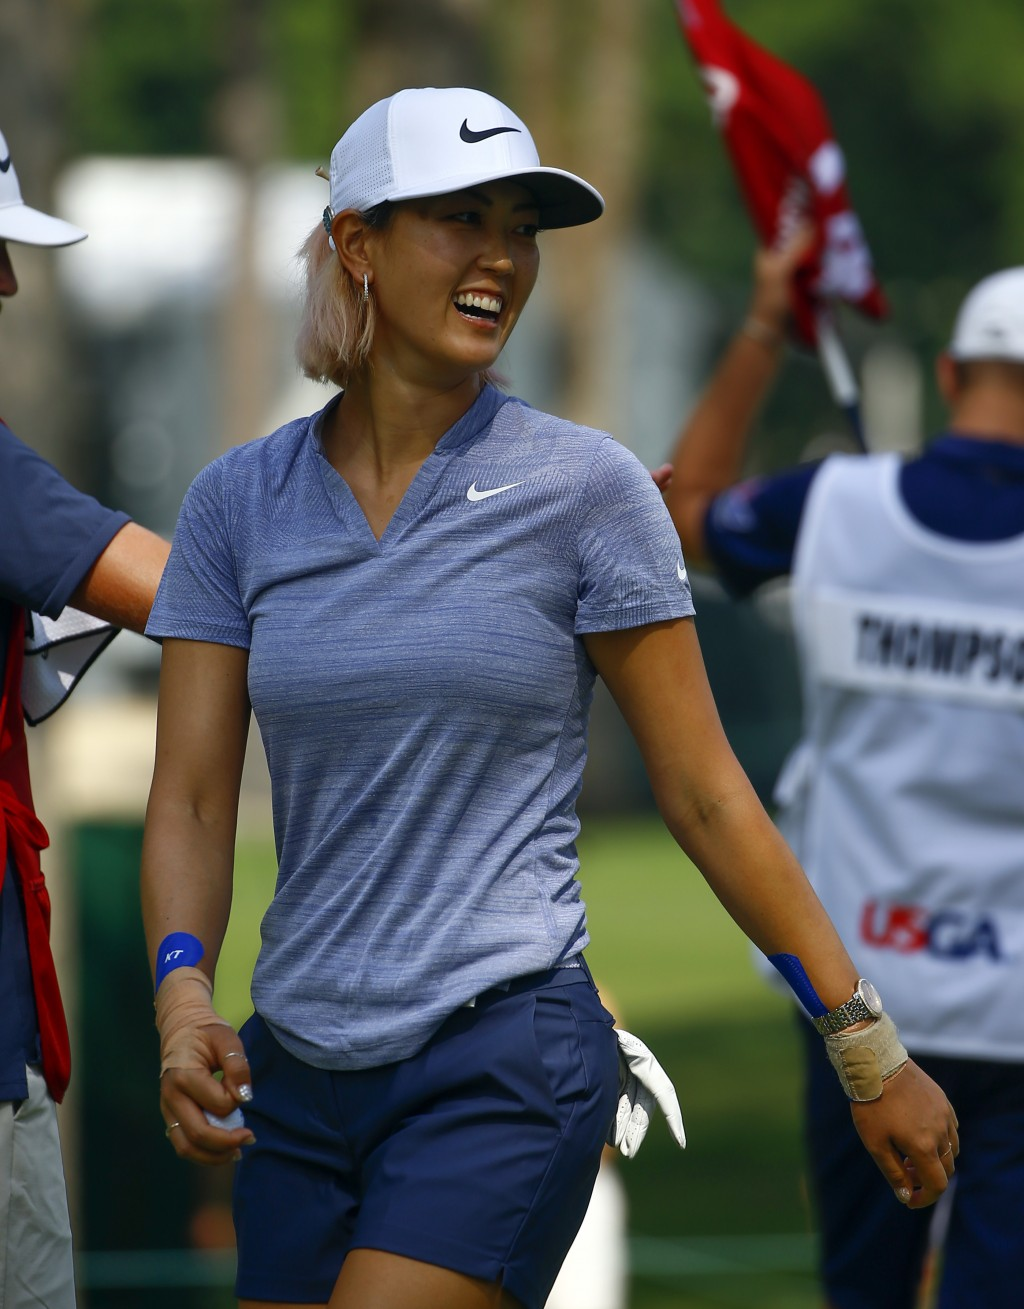 FILE - In this June 2, 2018, file photo, Michelle Wie smiles as she walks off the green after making a birdie putt on the 14th hole during the complet